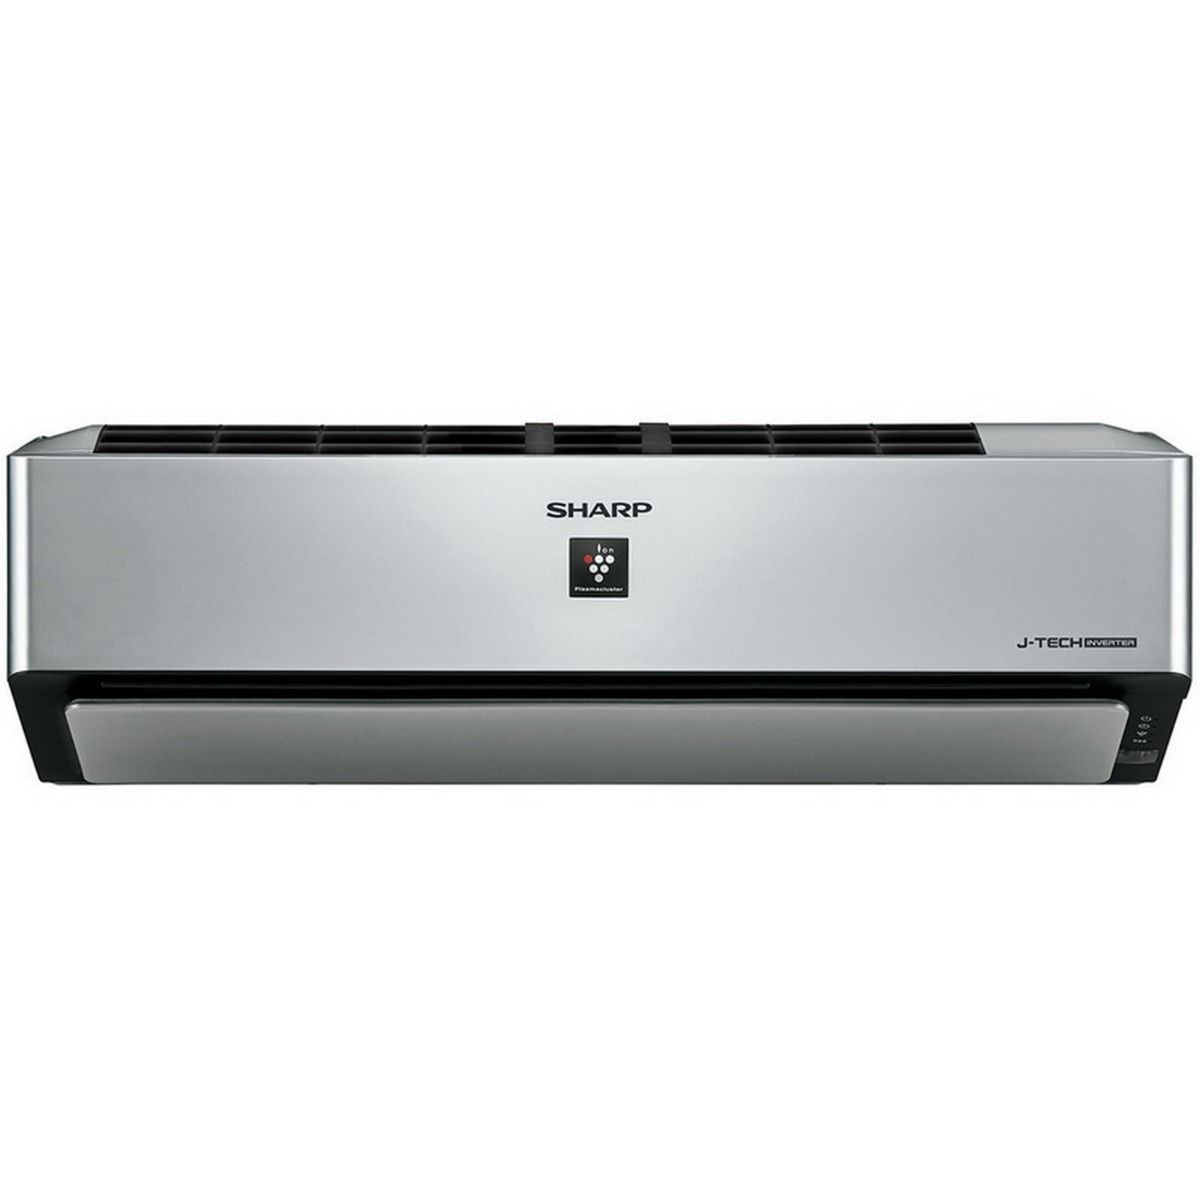 Sharp Inverter R32 AH-PHX Products ,  Sharp